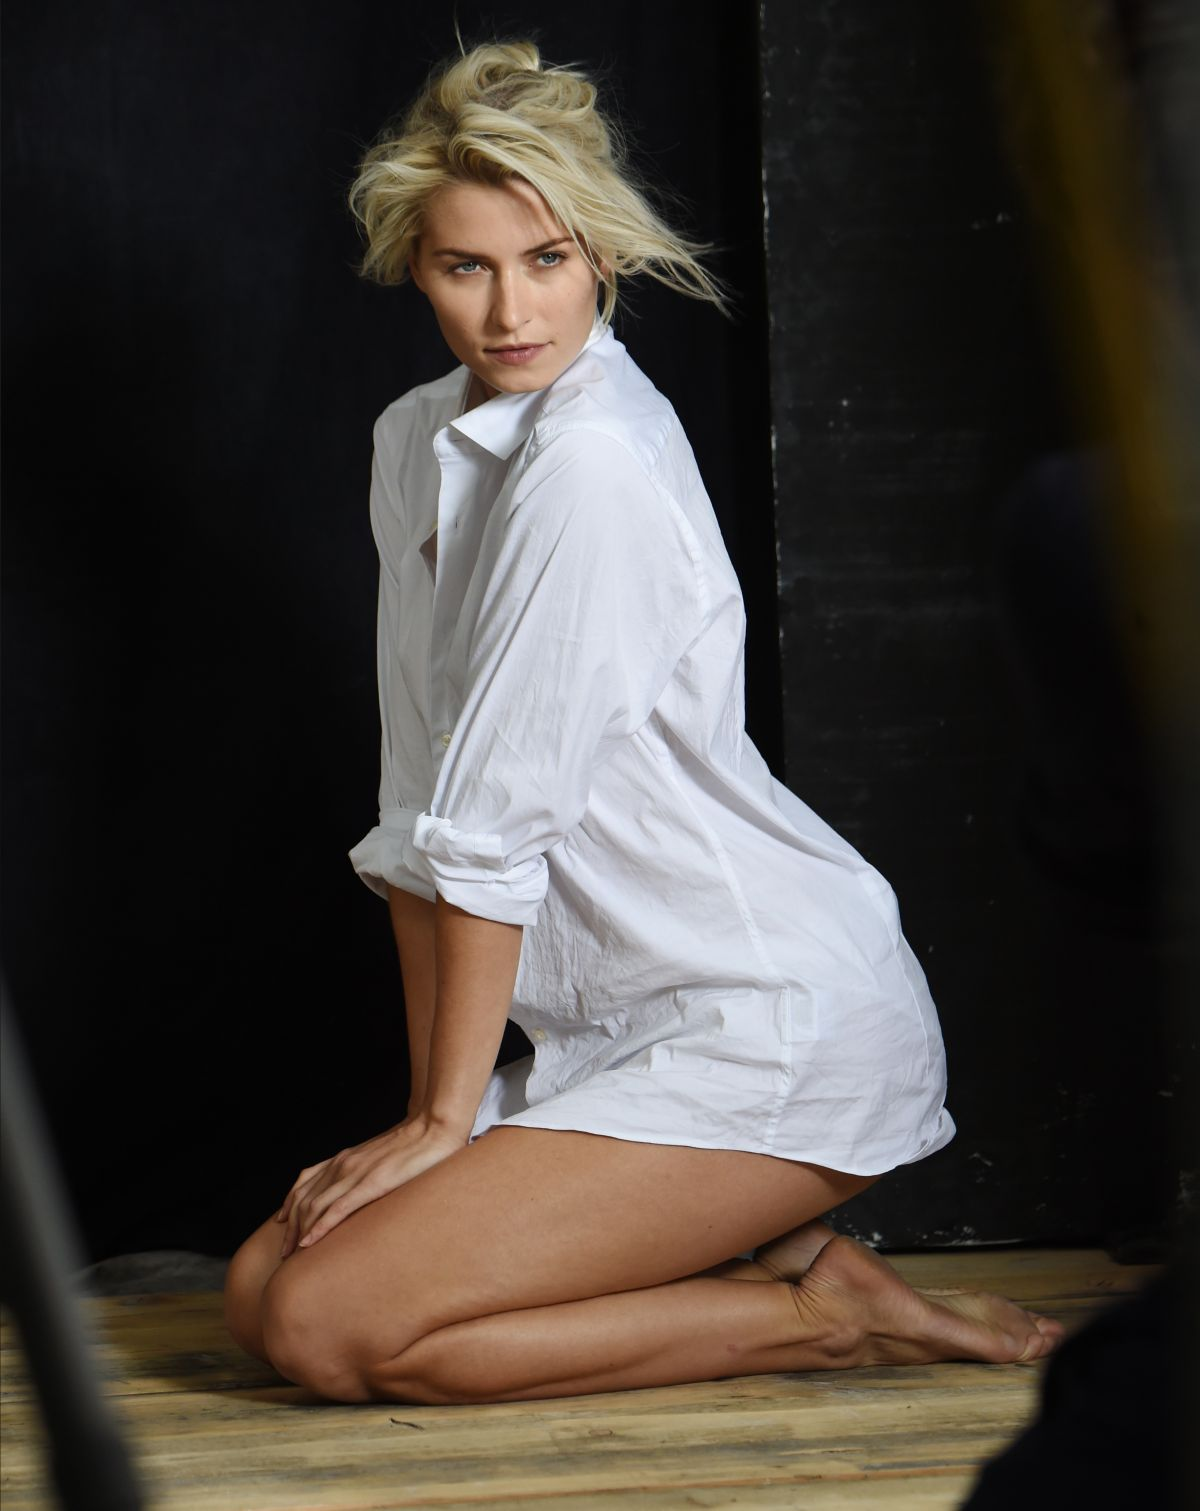 LENA GERCKE on the Set of a Photoshoot for Joop in Munich 06/24/2017